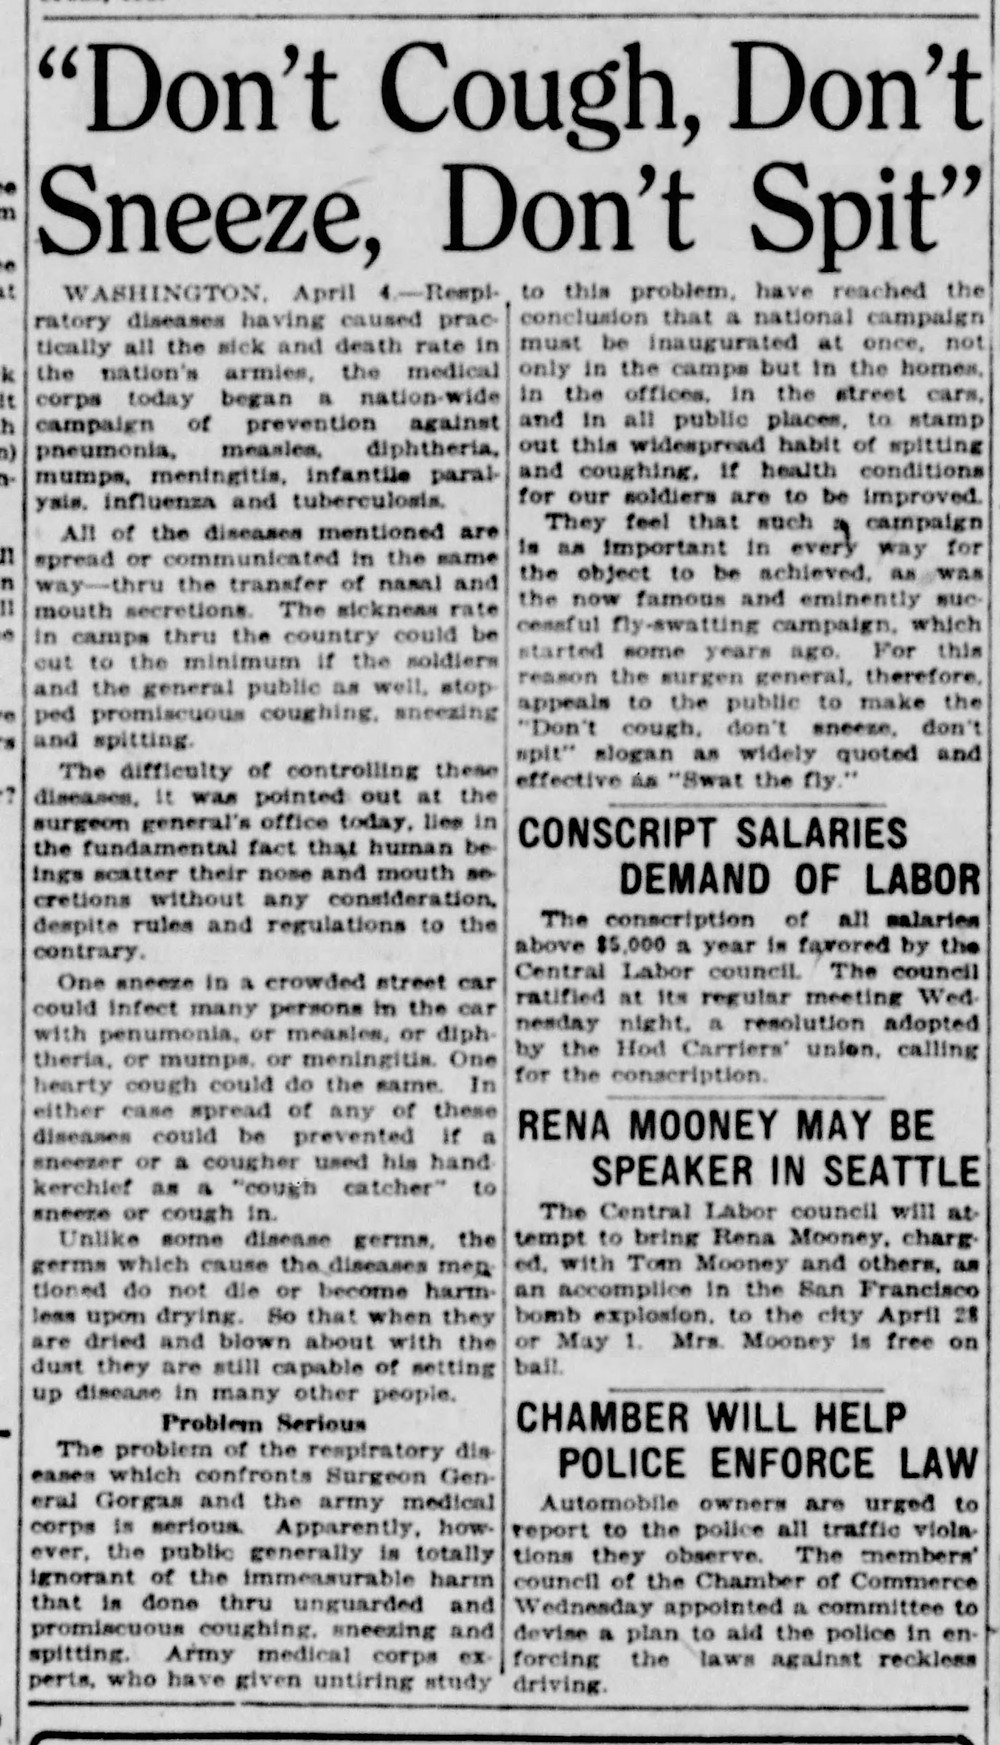 News clipping from the Seattle Star Newspaper. April 4, 1918